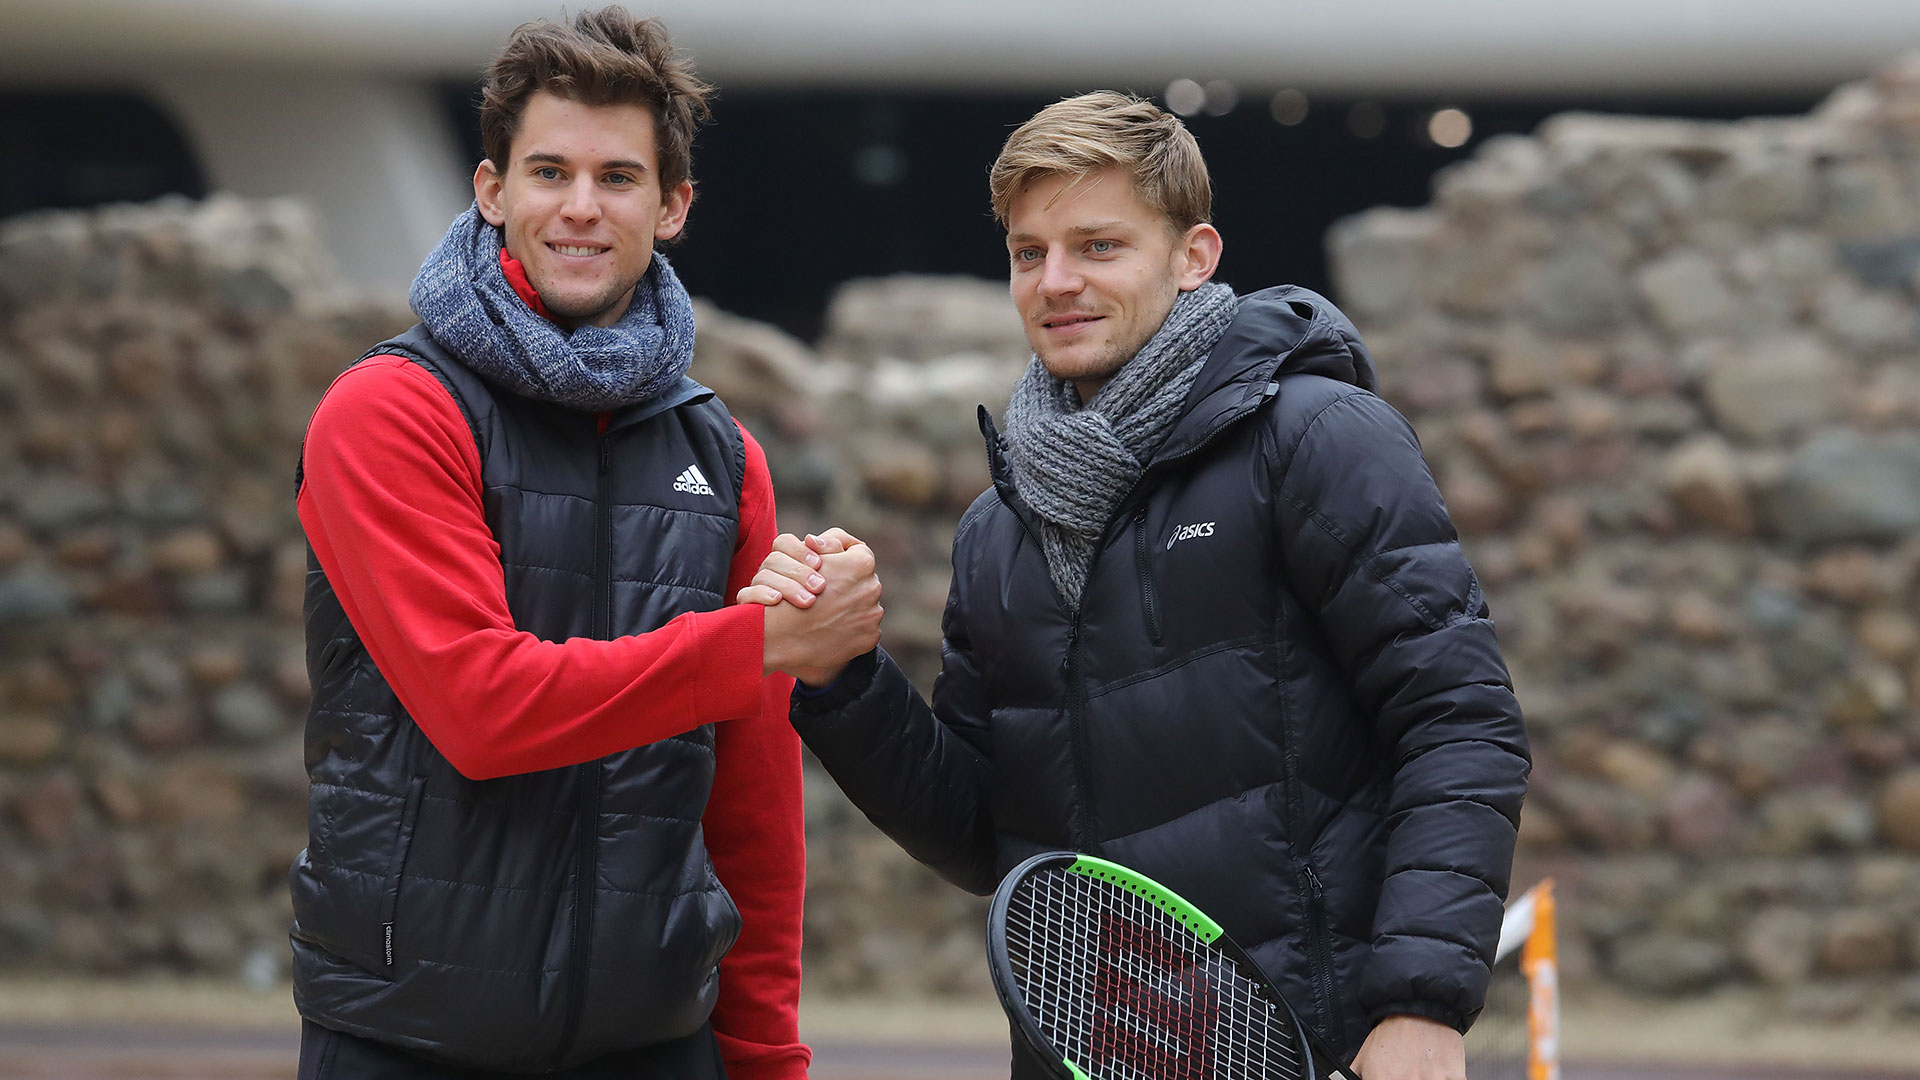 Thiem Goffin